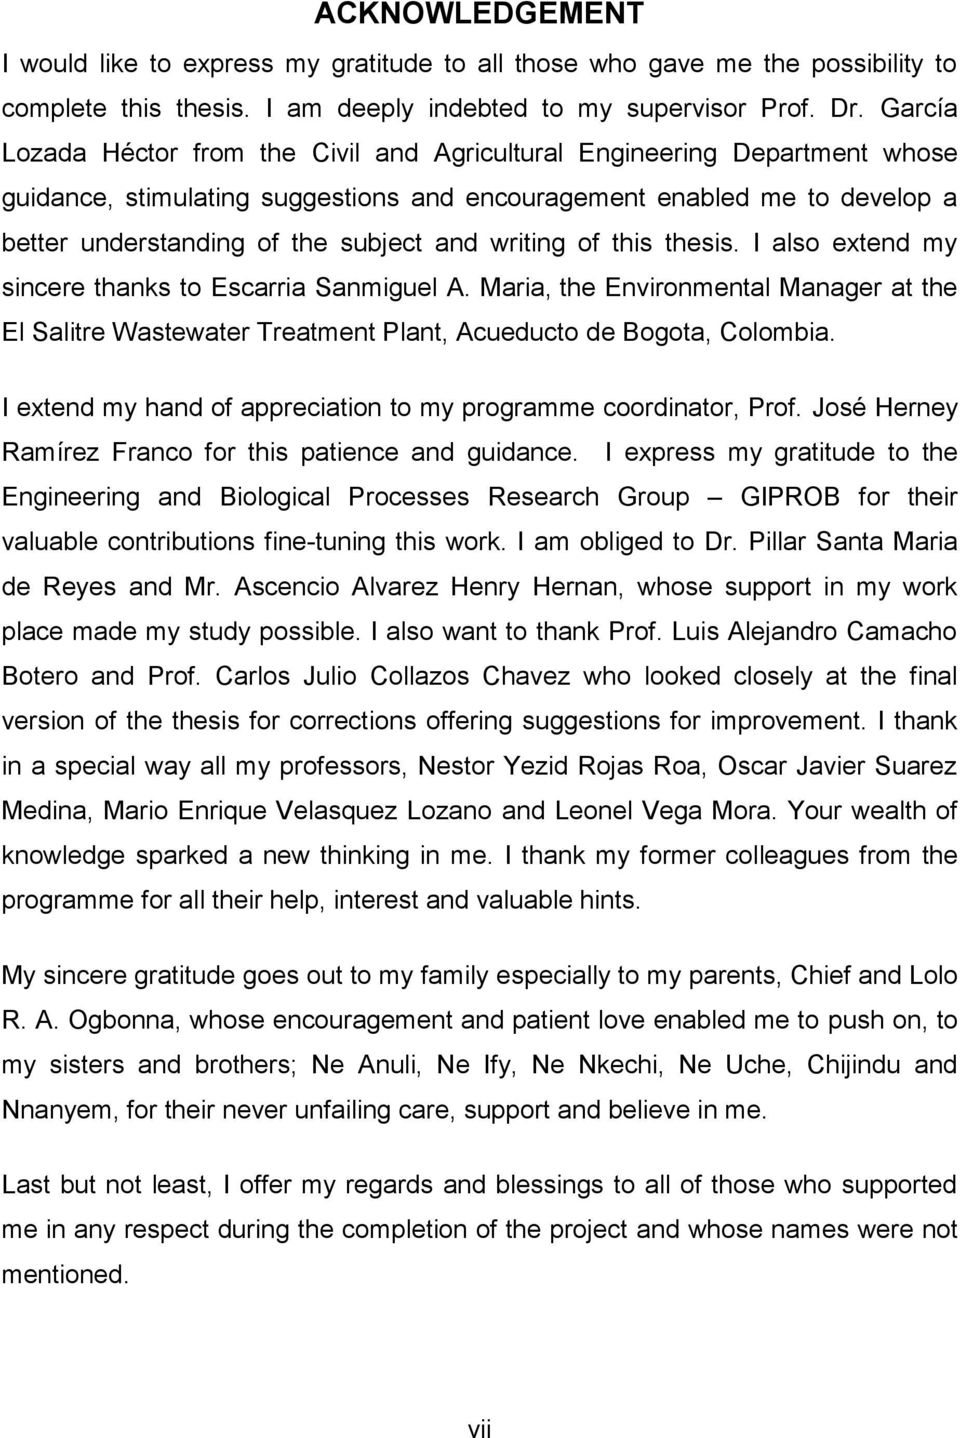 writing of this thesis. I also extend my sincere thanks to Escarria Sanmiguel A. Maria, the Environmental Manager at the El Salitre Wastewater Treatment Plant, Acueducto de Bogota, Colombia.